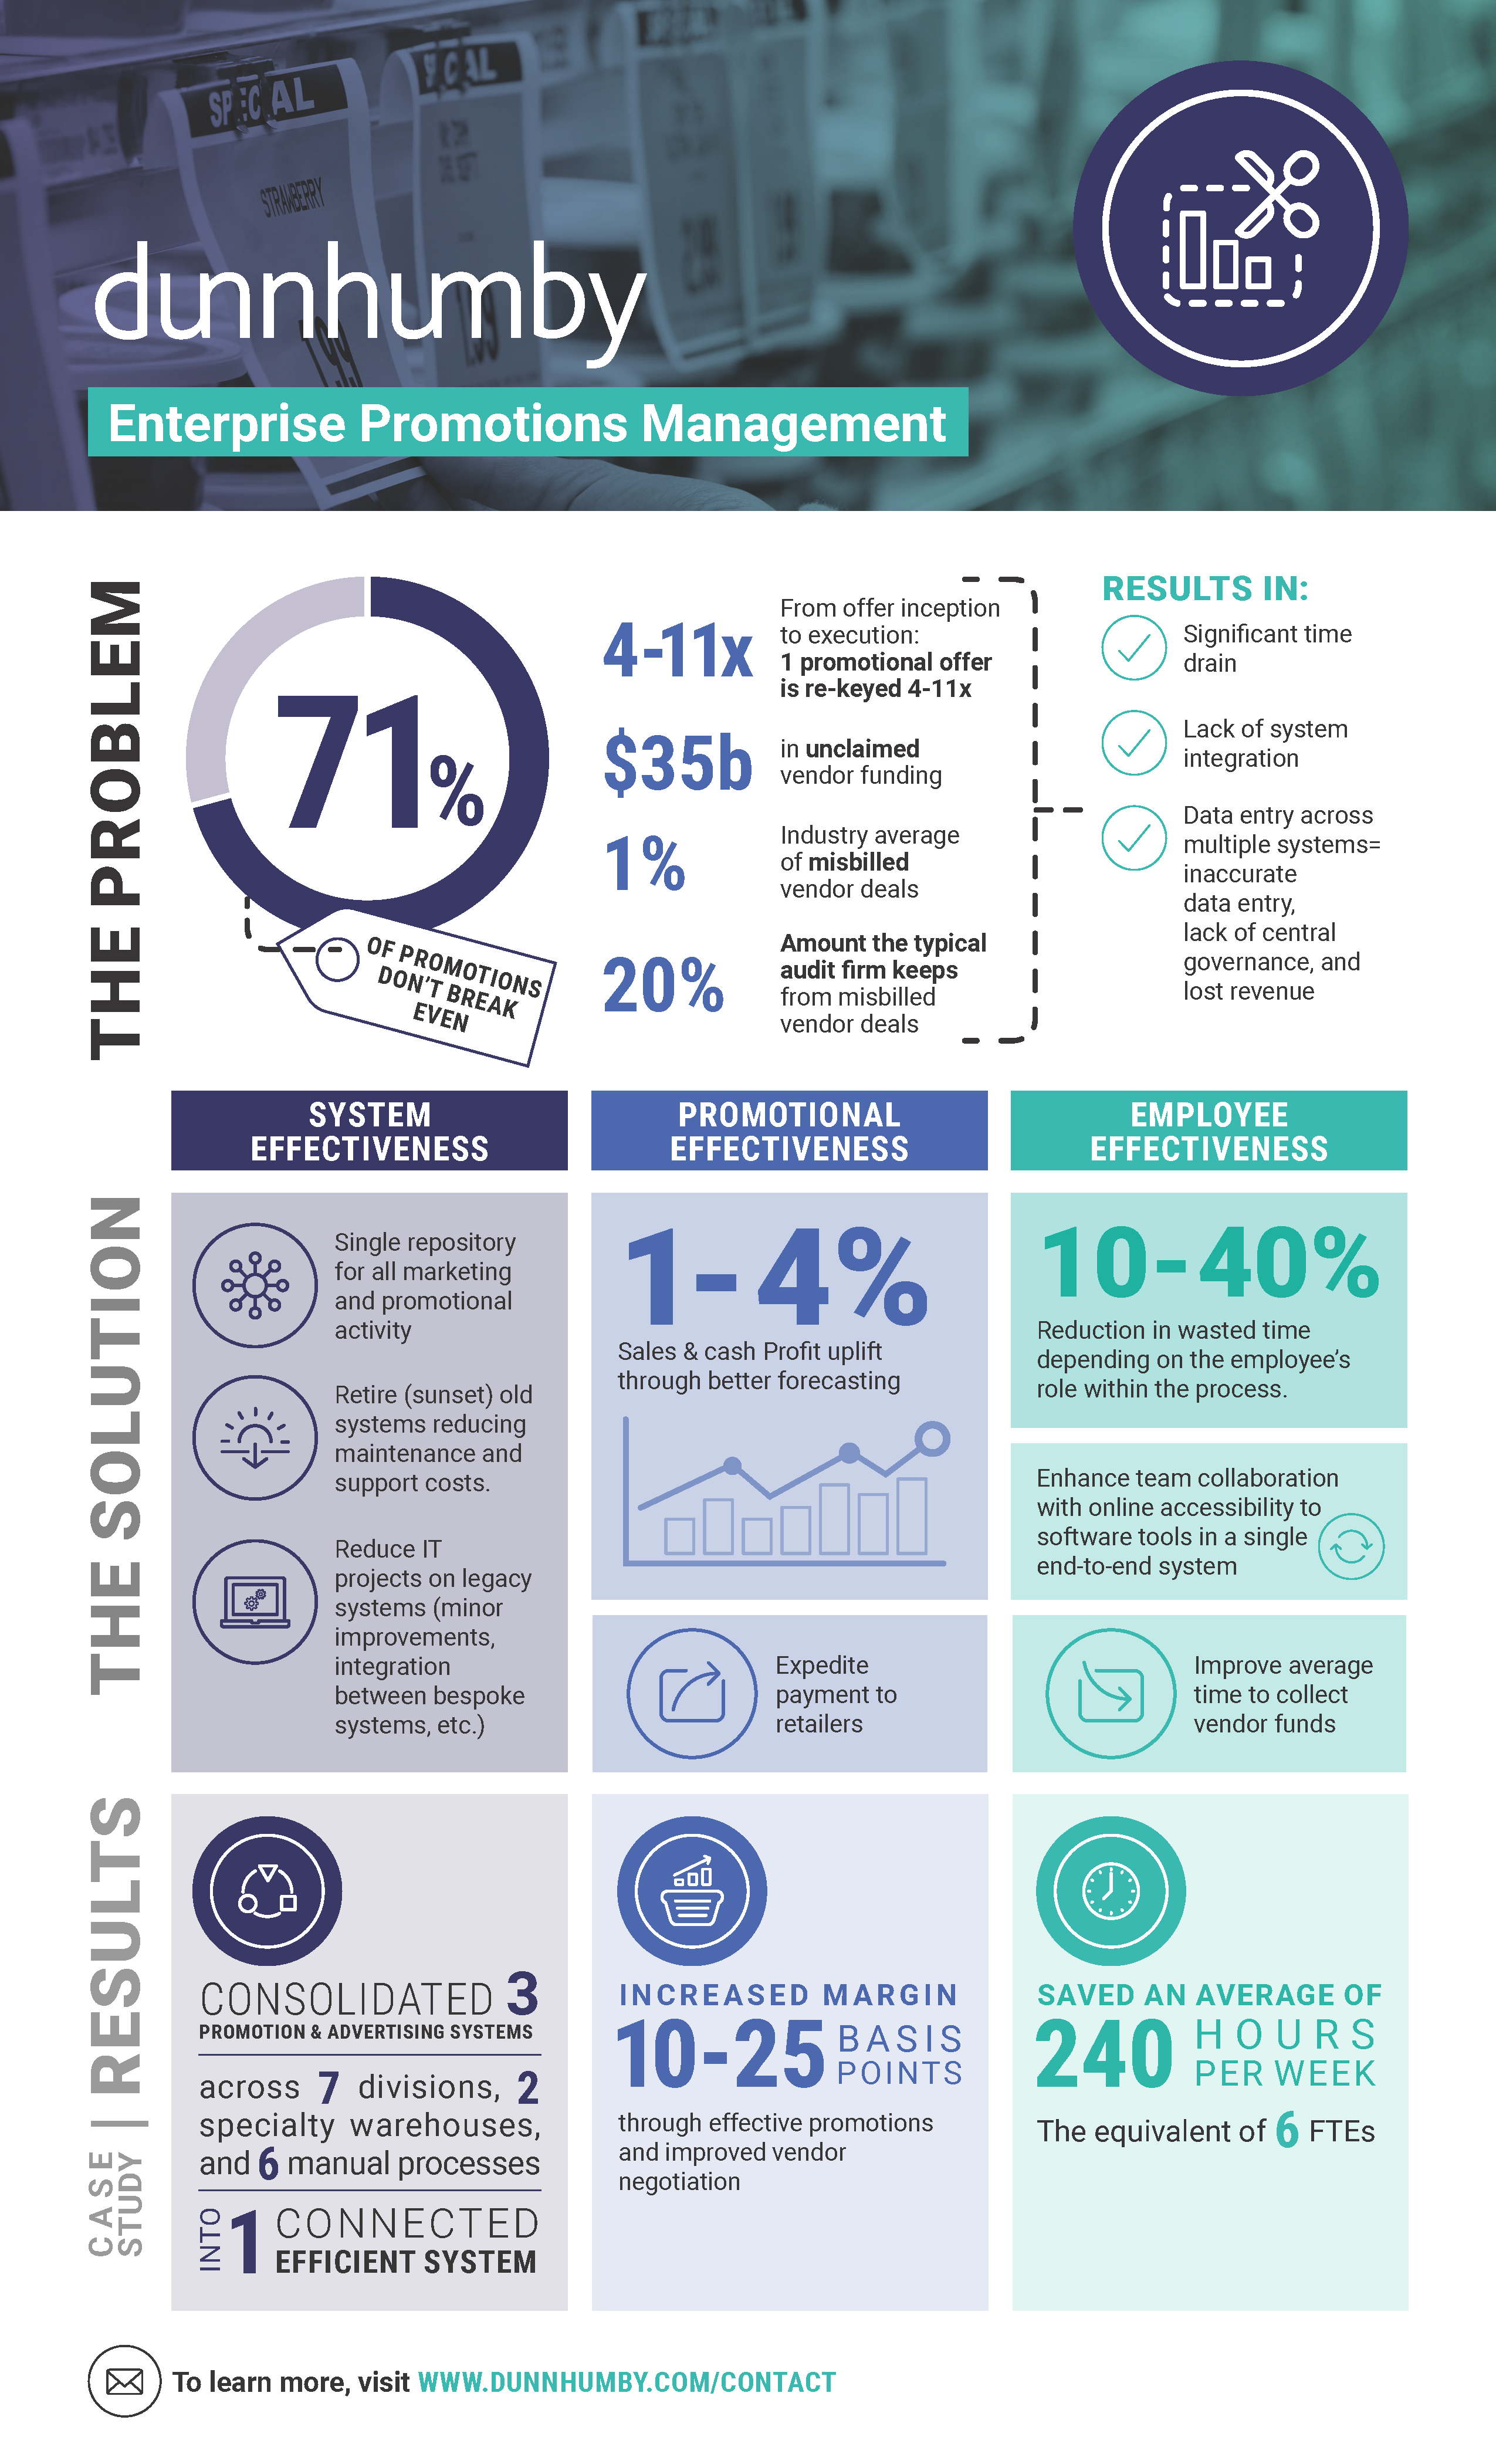 dunnhumby enterprise promotions management infographic